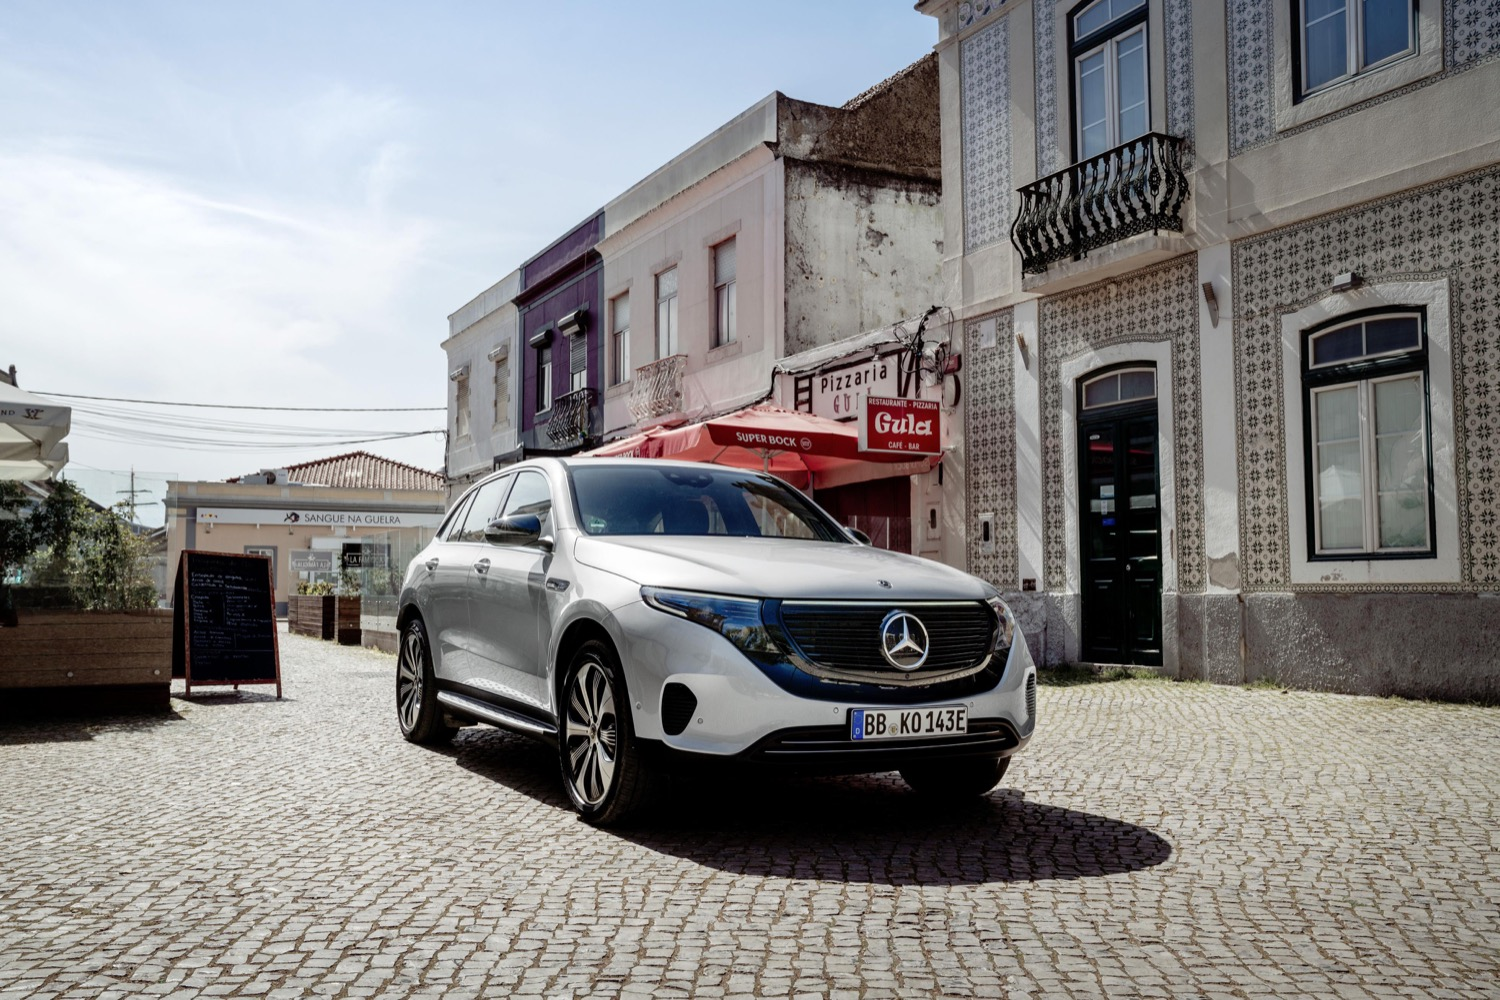 2019_mercedes_eqc_400_4matic_suv_electric_03